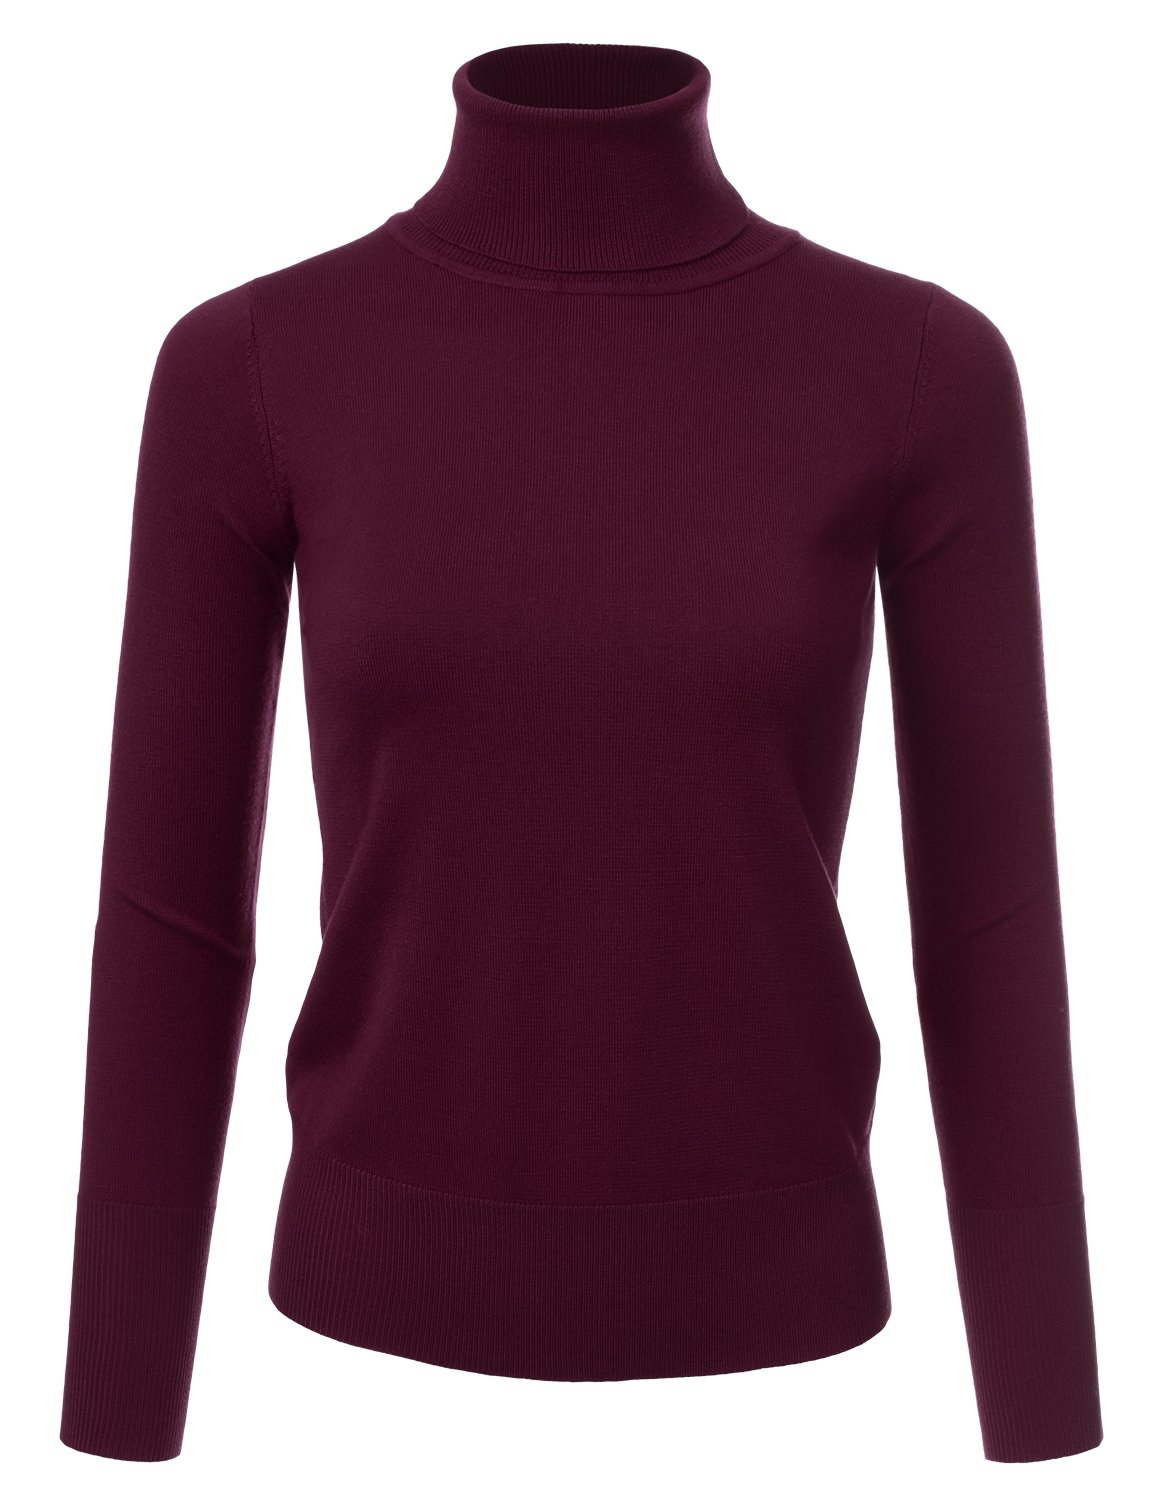 NINEXIS Womens Long Sleeve Turtle Neck Sweater Burgundy L